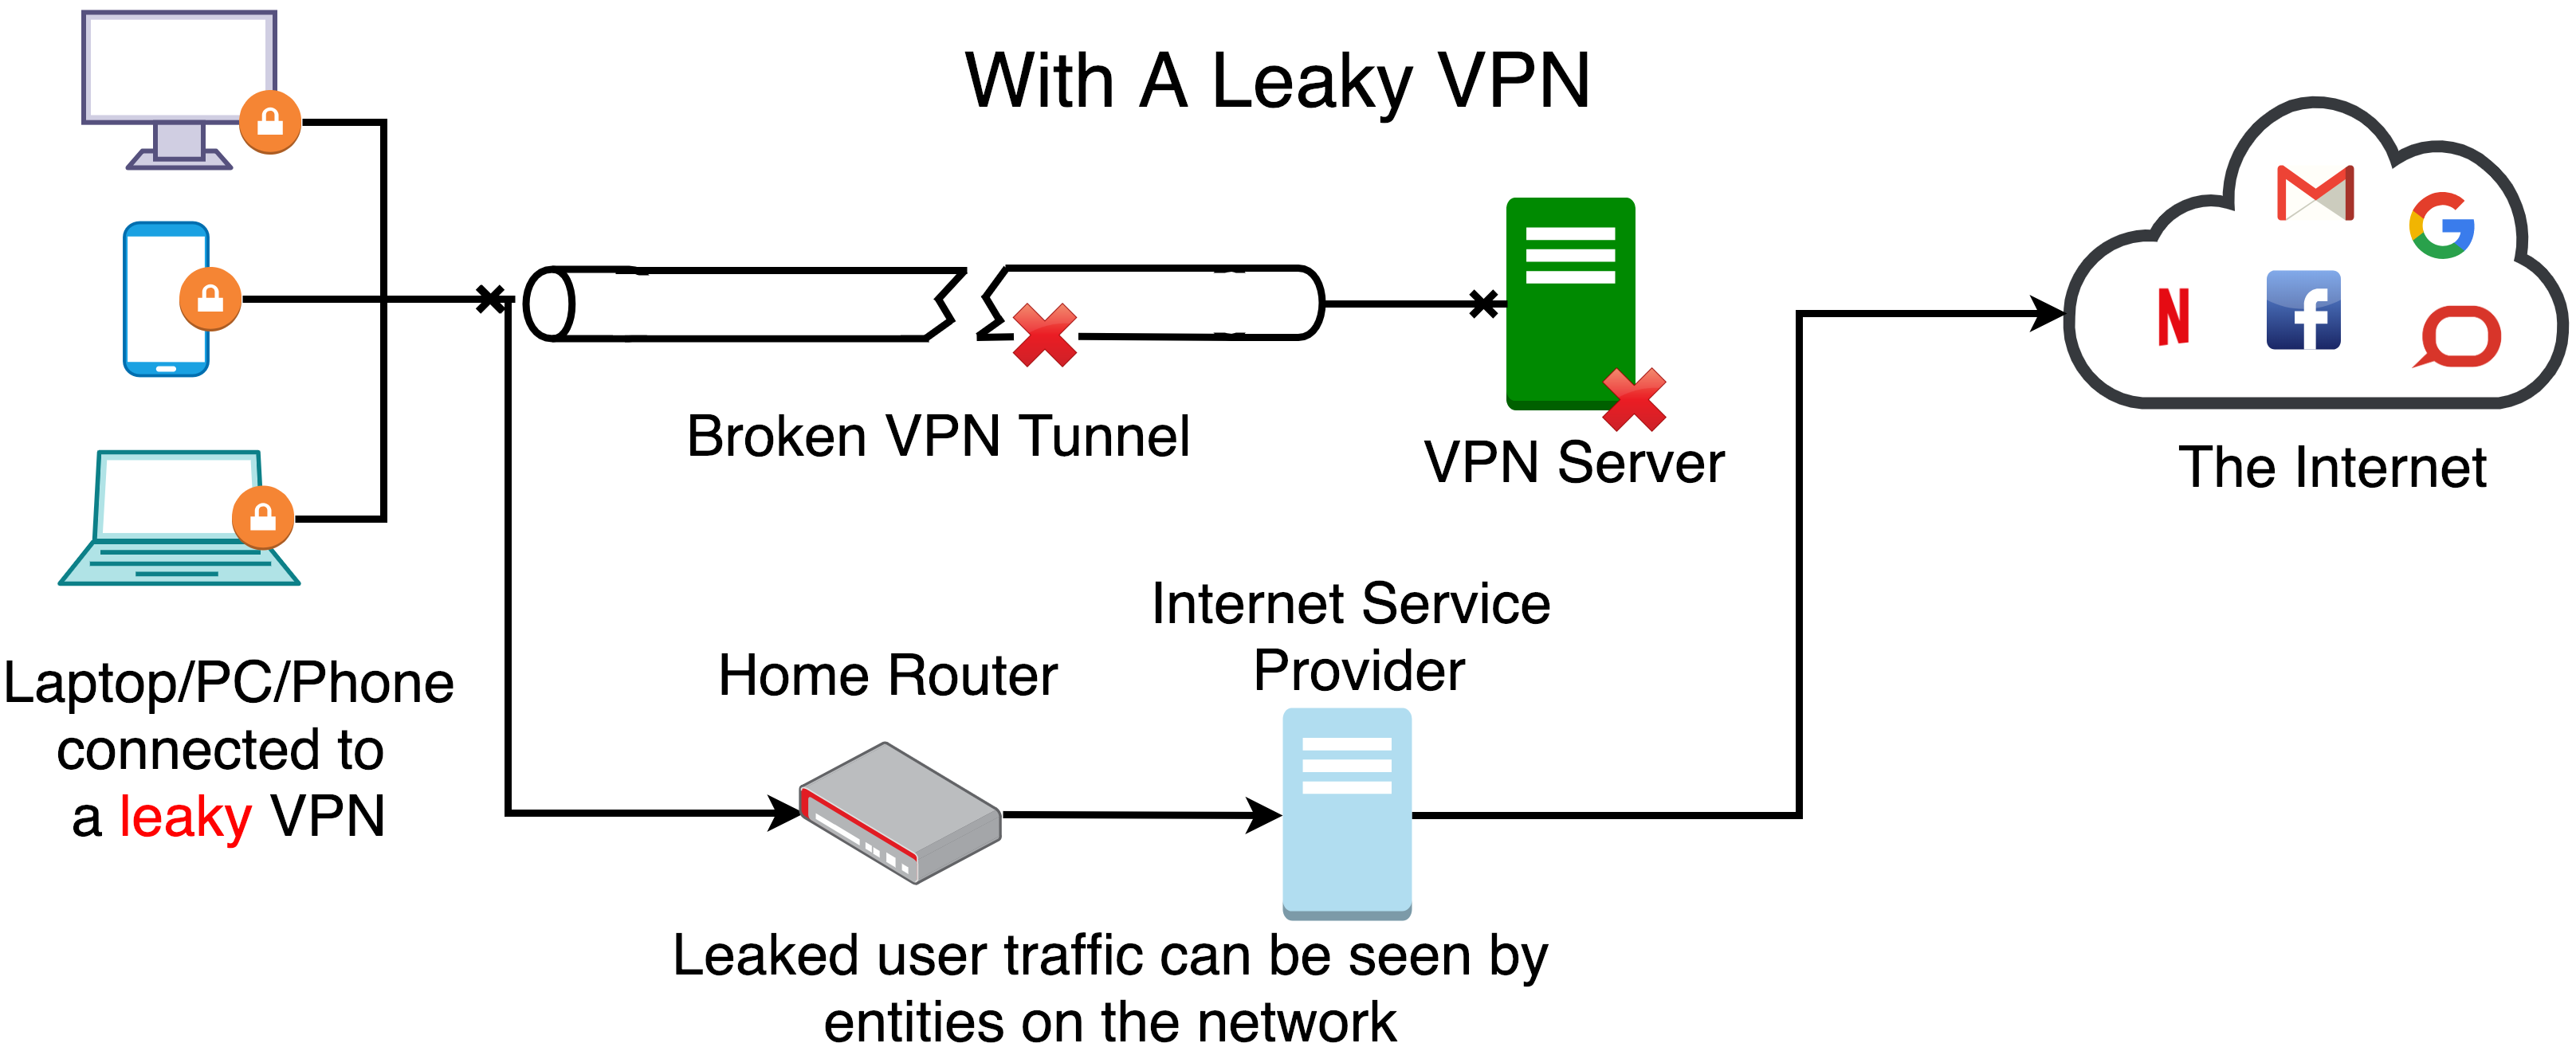 When VPNs don't work right, users' data leaks out. Mohammad Taha Khan, CC BY-ND